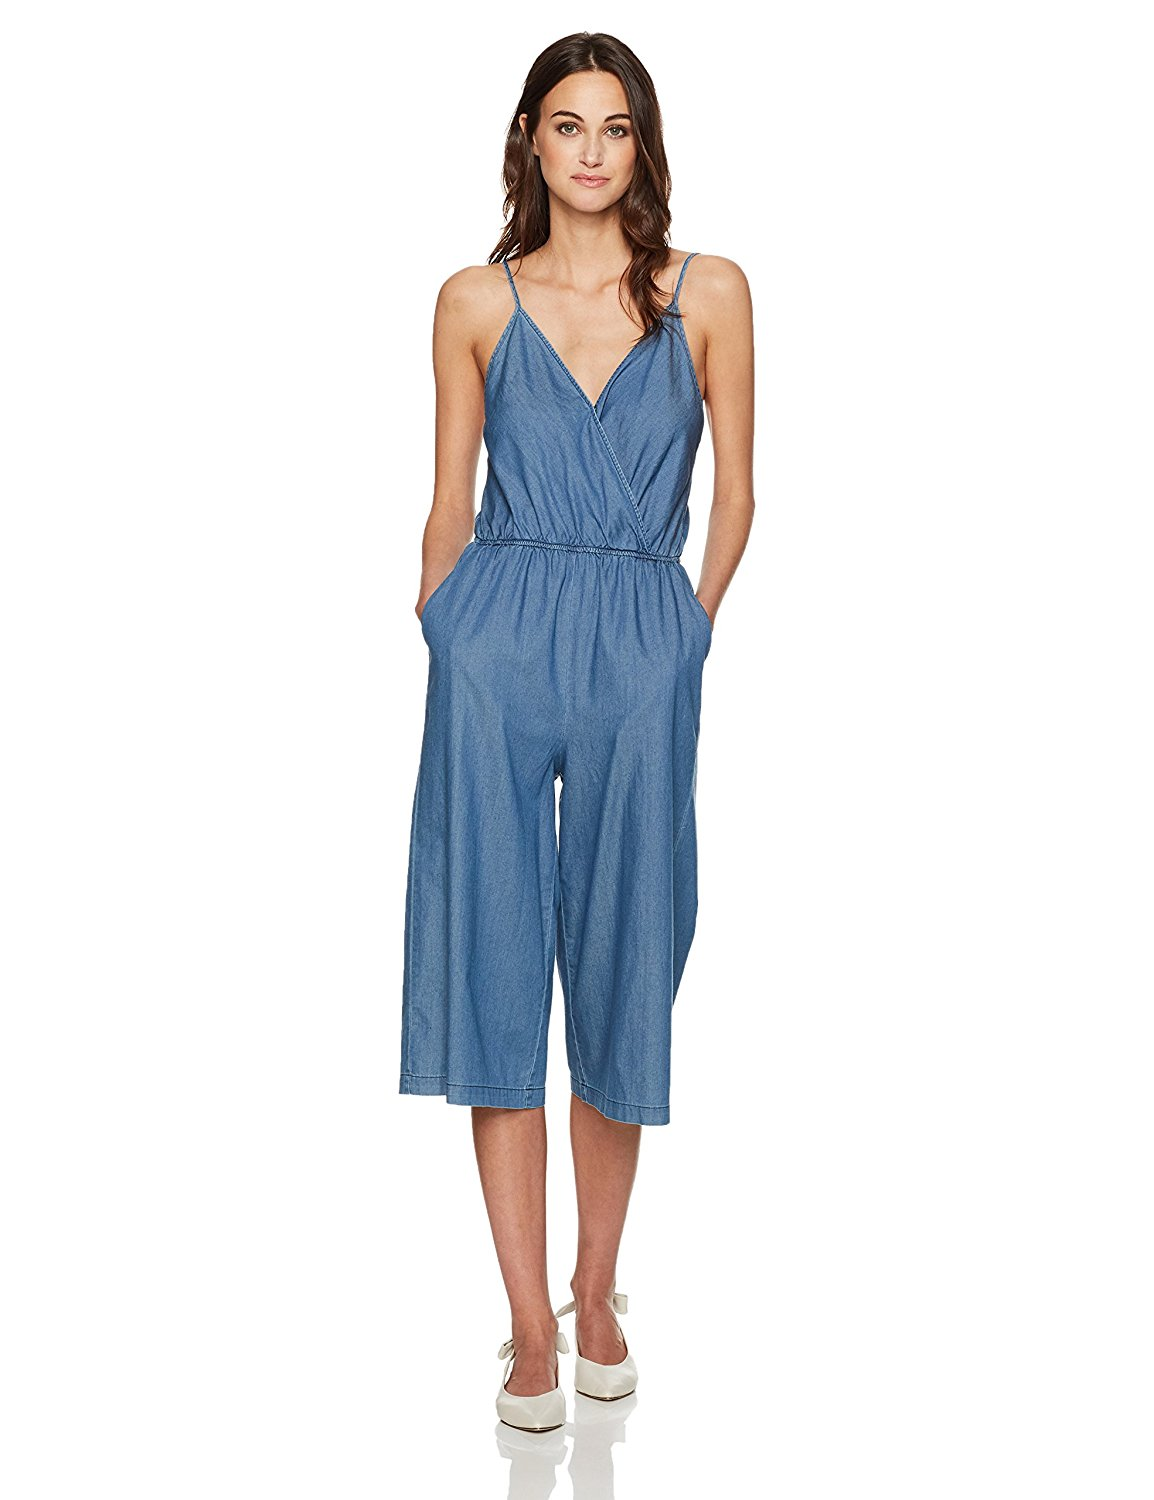 8abd33d89224 Get Quotations · BCBGeneration Women s Denim Surplice Culotte Jumpsuit